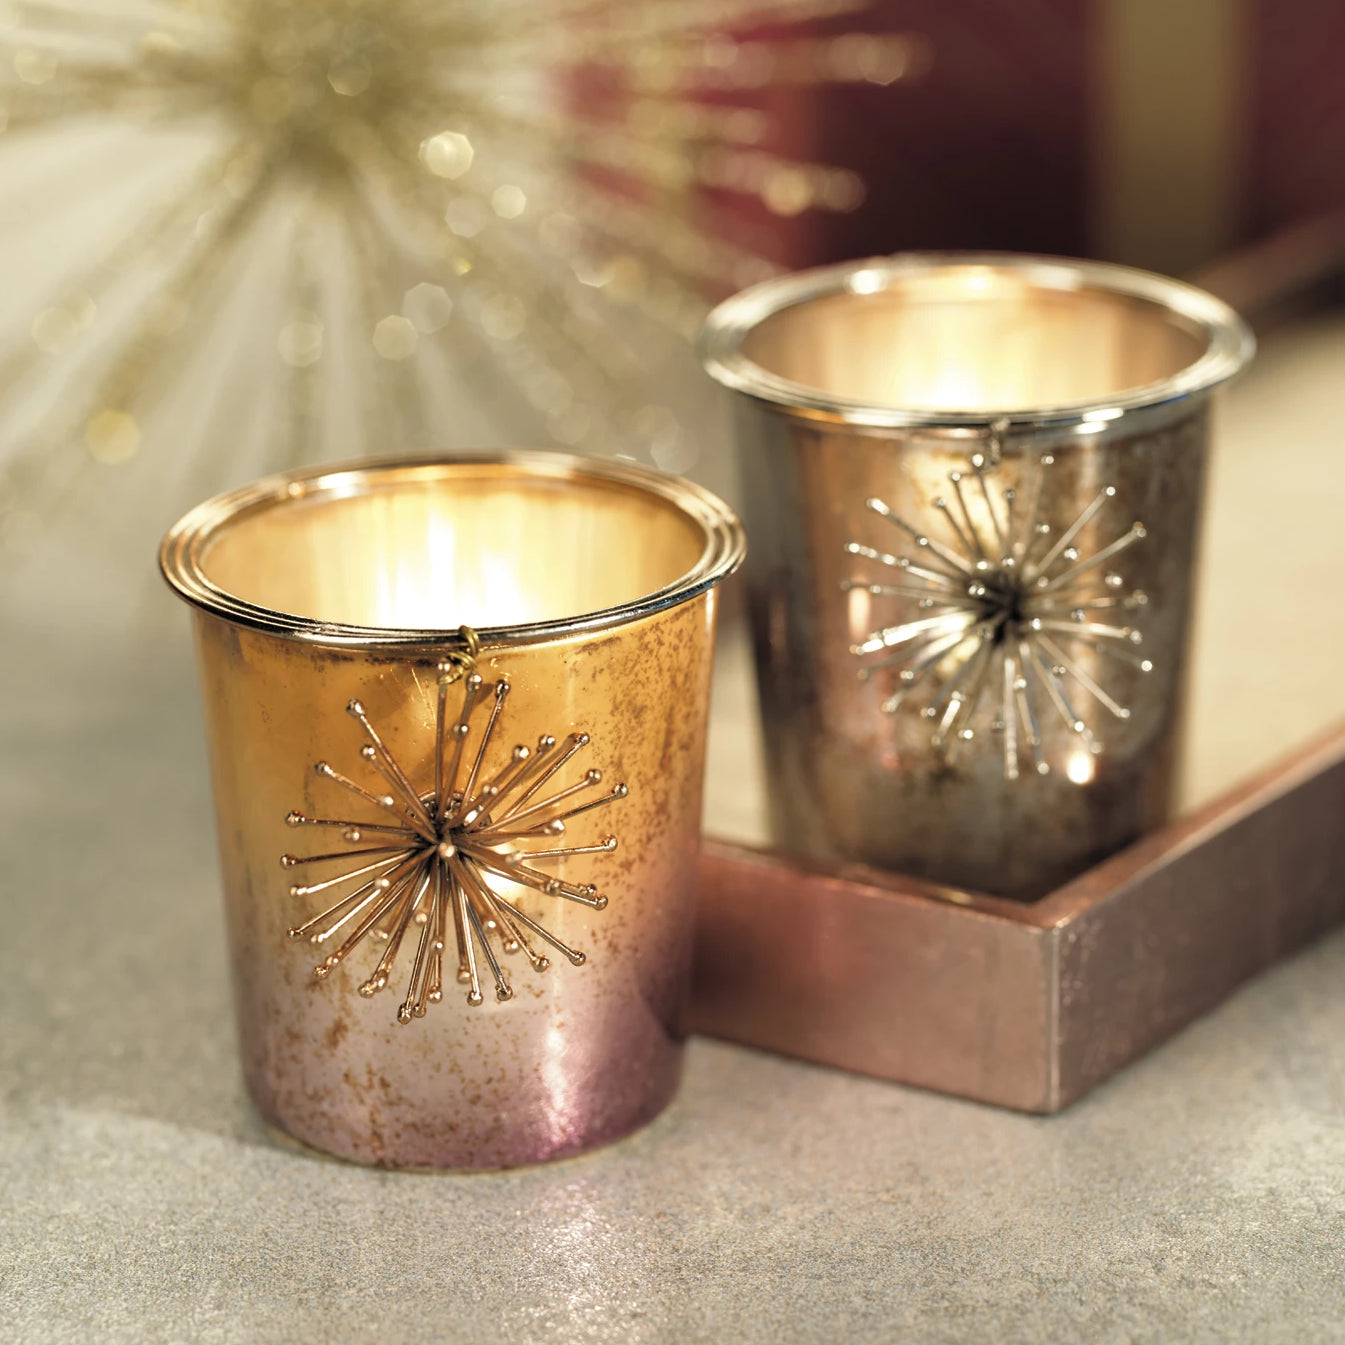 Starburst Tealight Holder - s/6